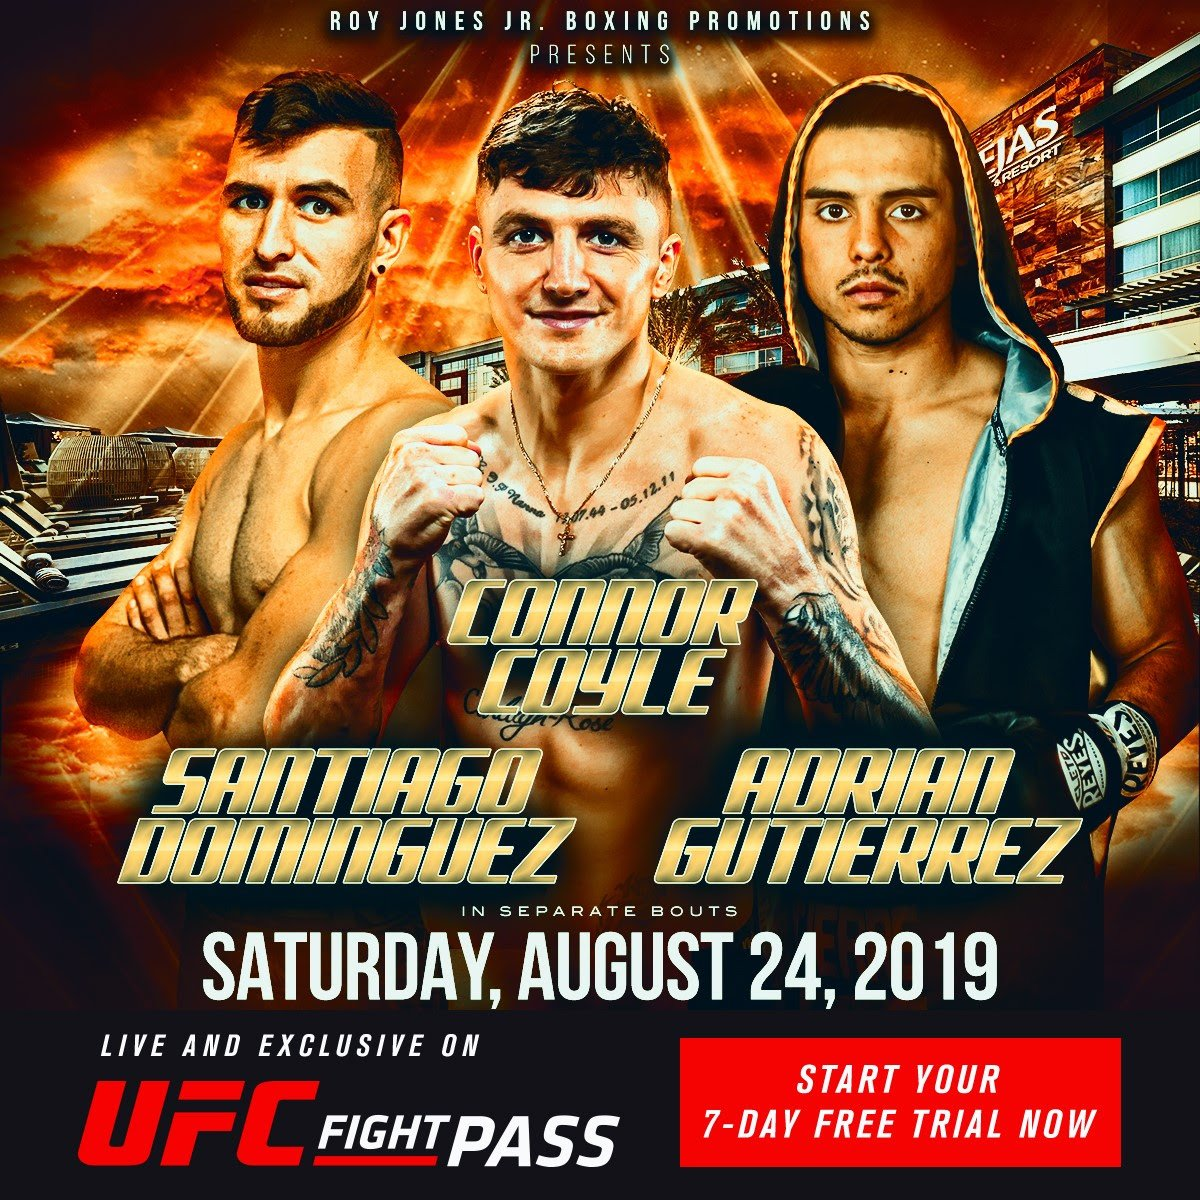 Connor Coyle, Rafael Ramon Ramirez - World-class professional boxing returns Saturday night, August 24, to Viejas Casino and Resort in Alpine, California, which is located about 30 miles from San Diego, with another exciting installment of RJJ Boxing on UFC FIGHT PASS.